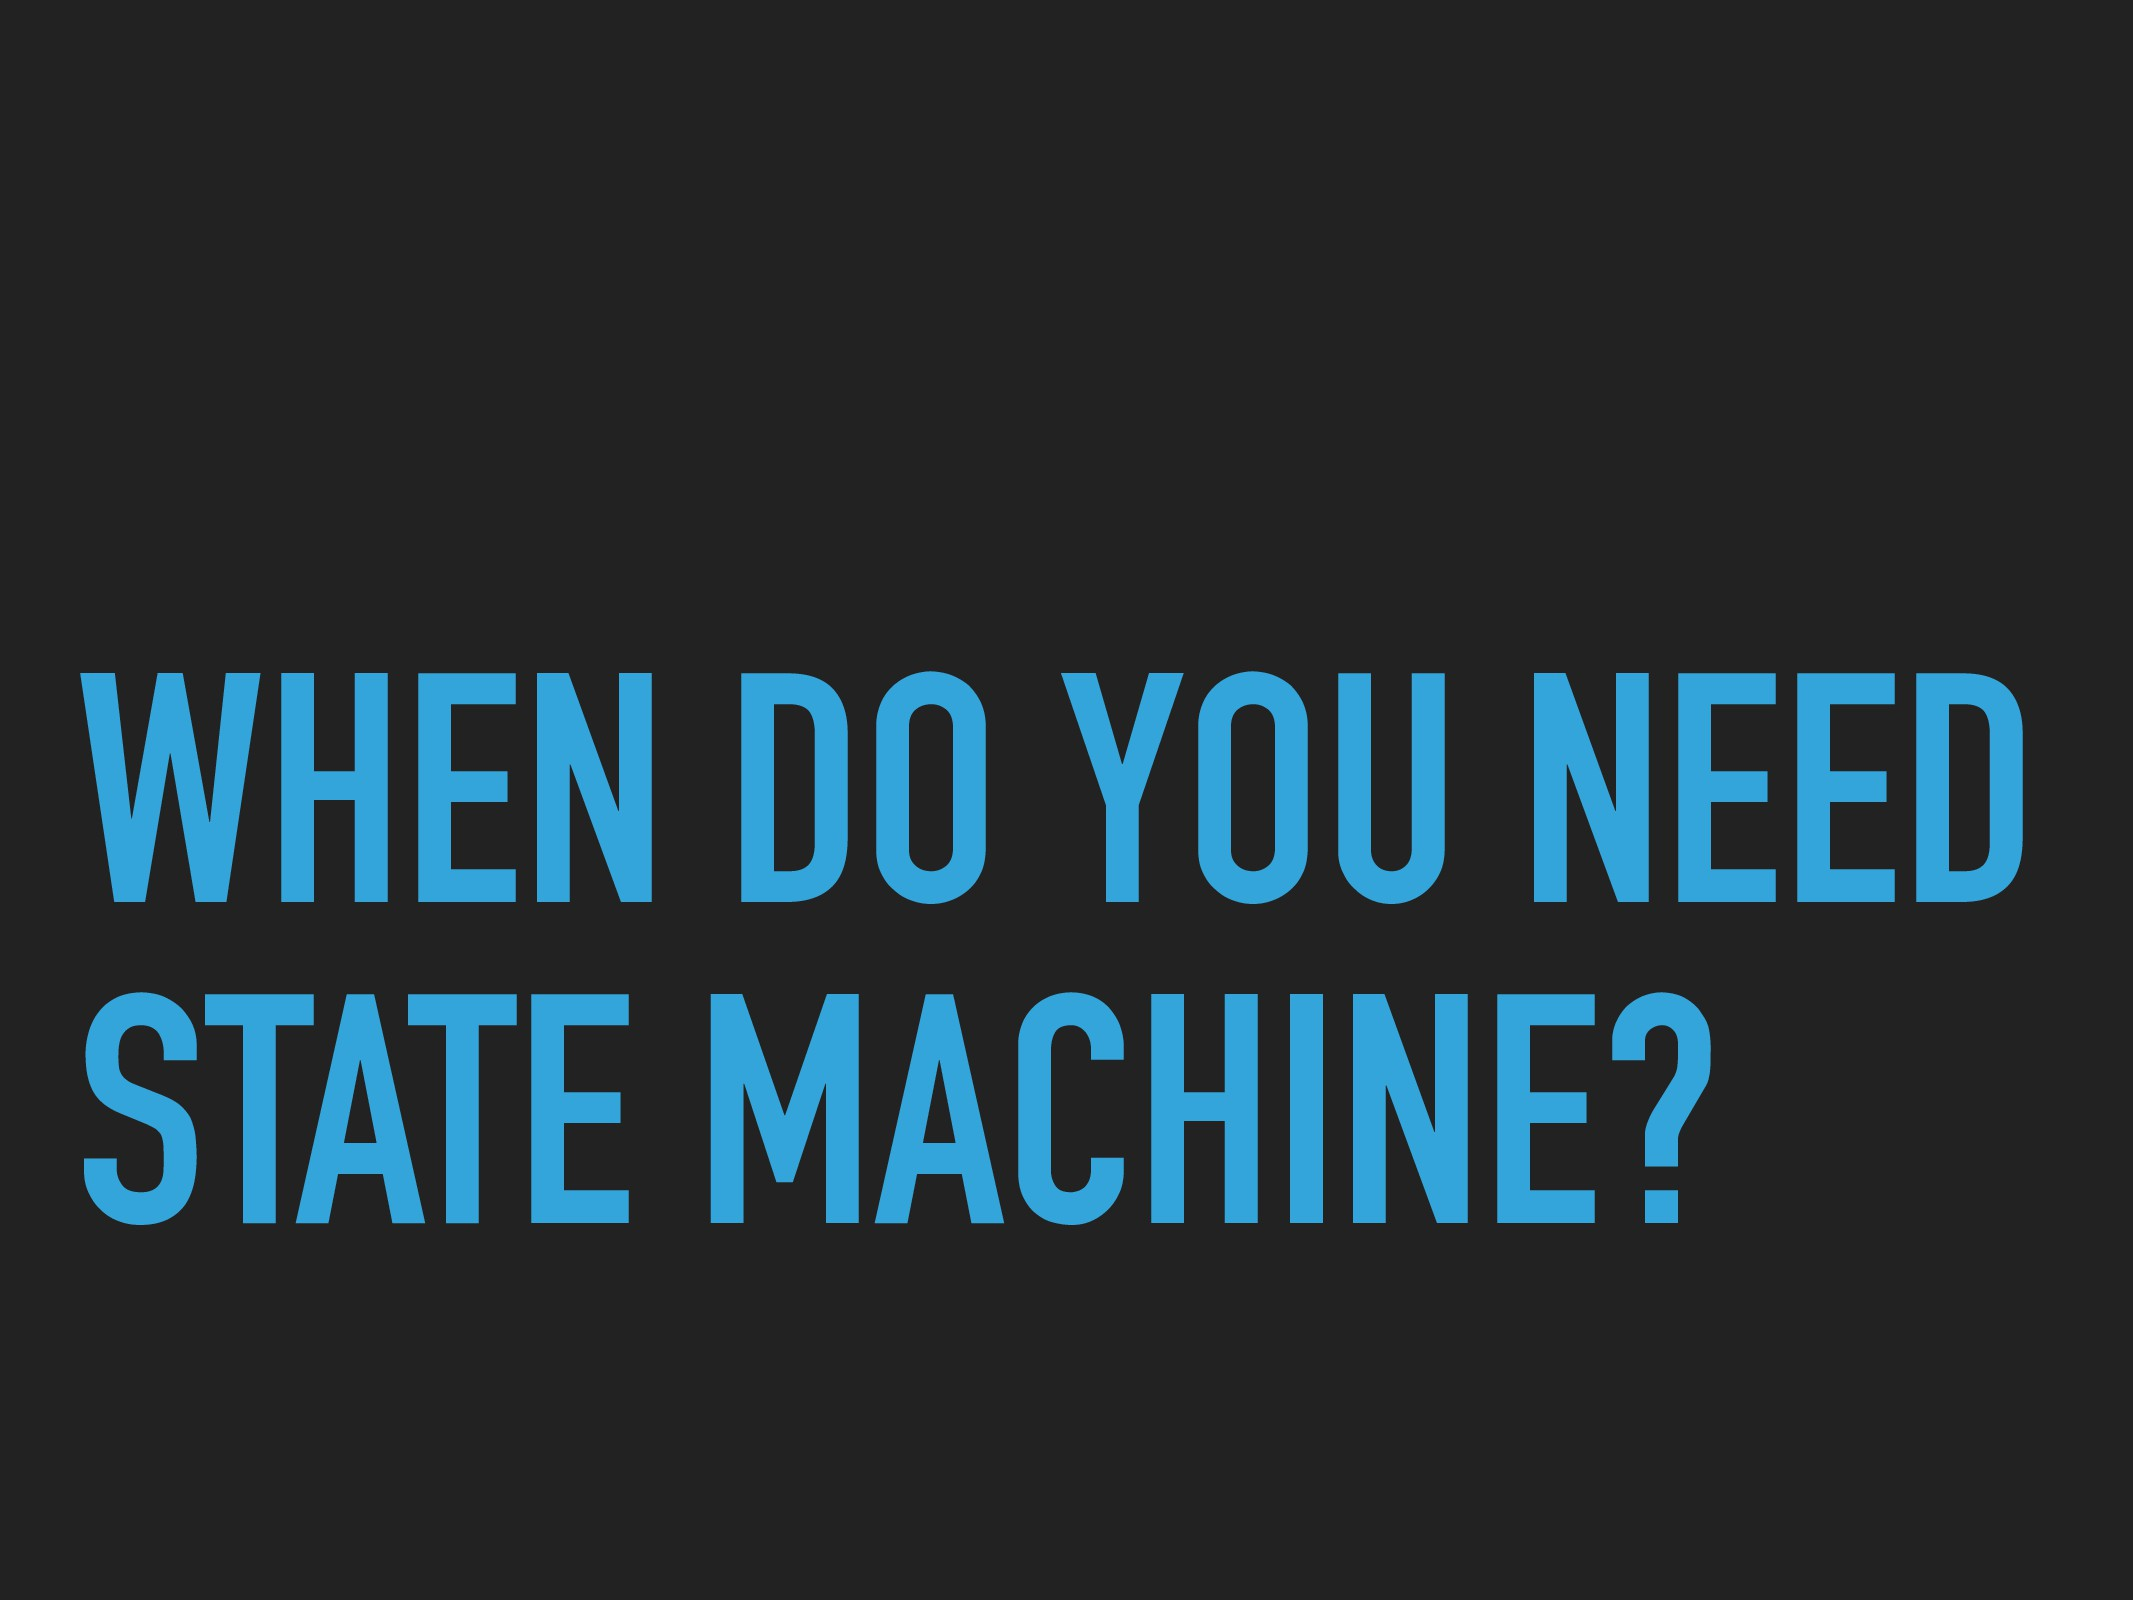 WHEN DO YOU NEED STATE MACHINE?